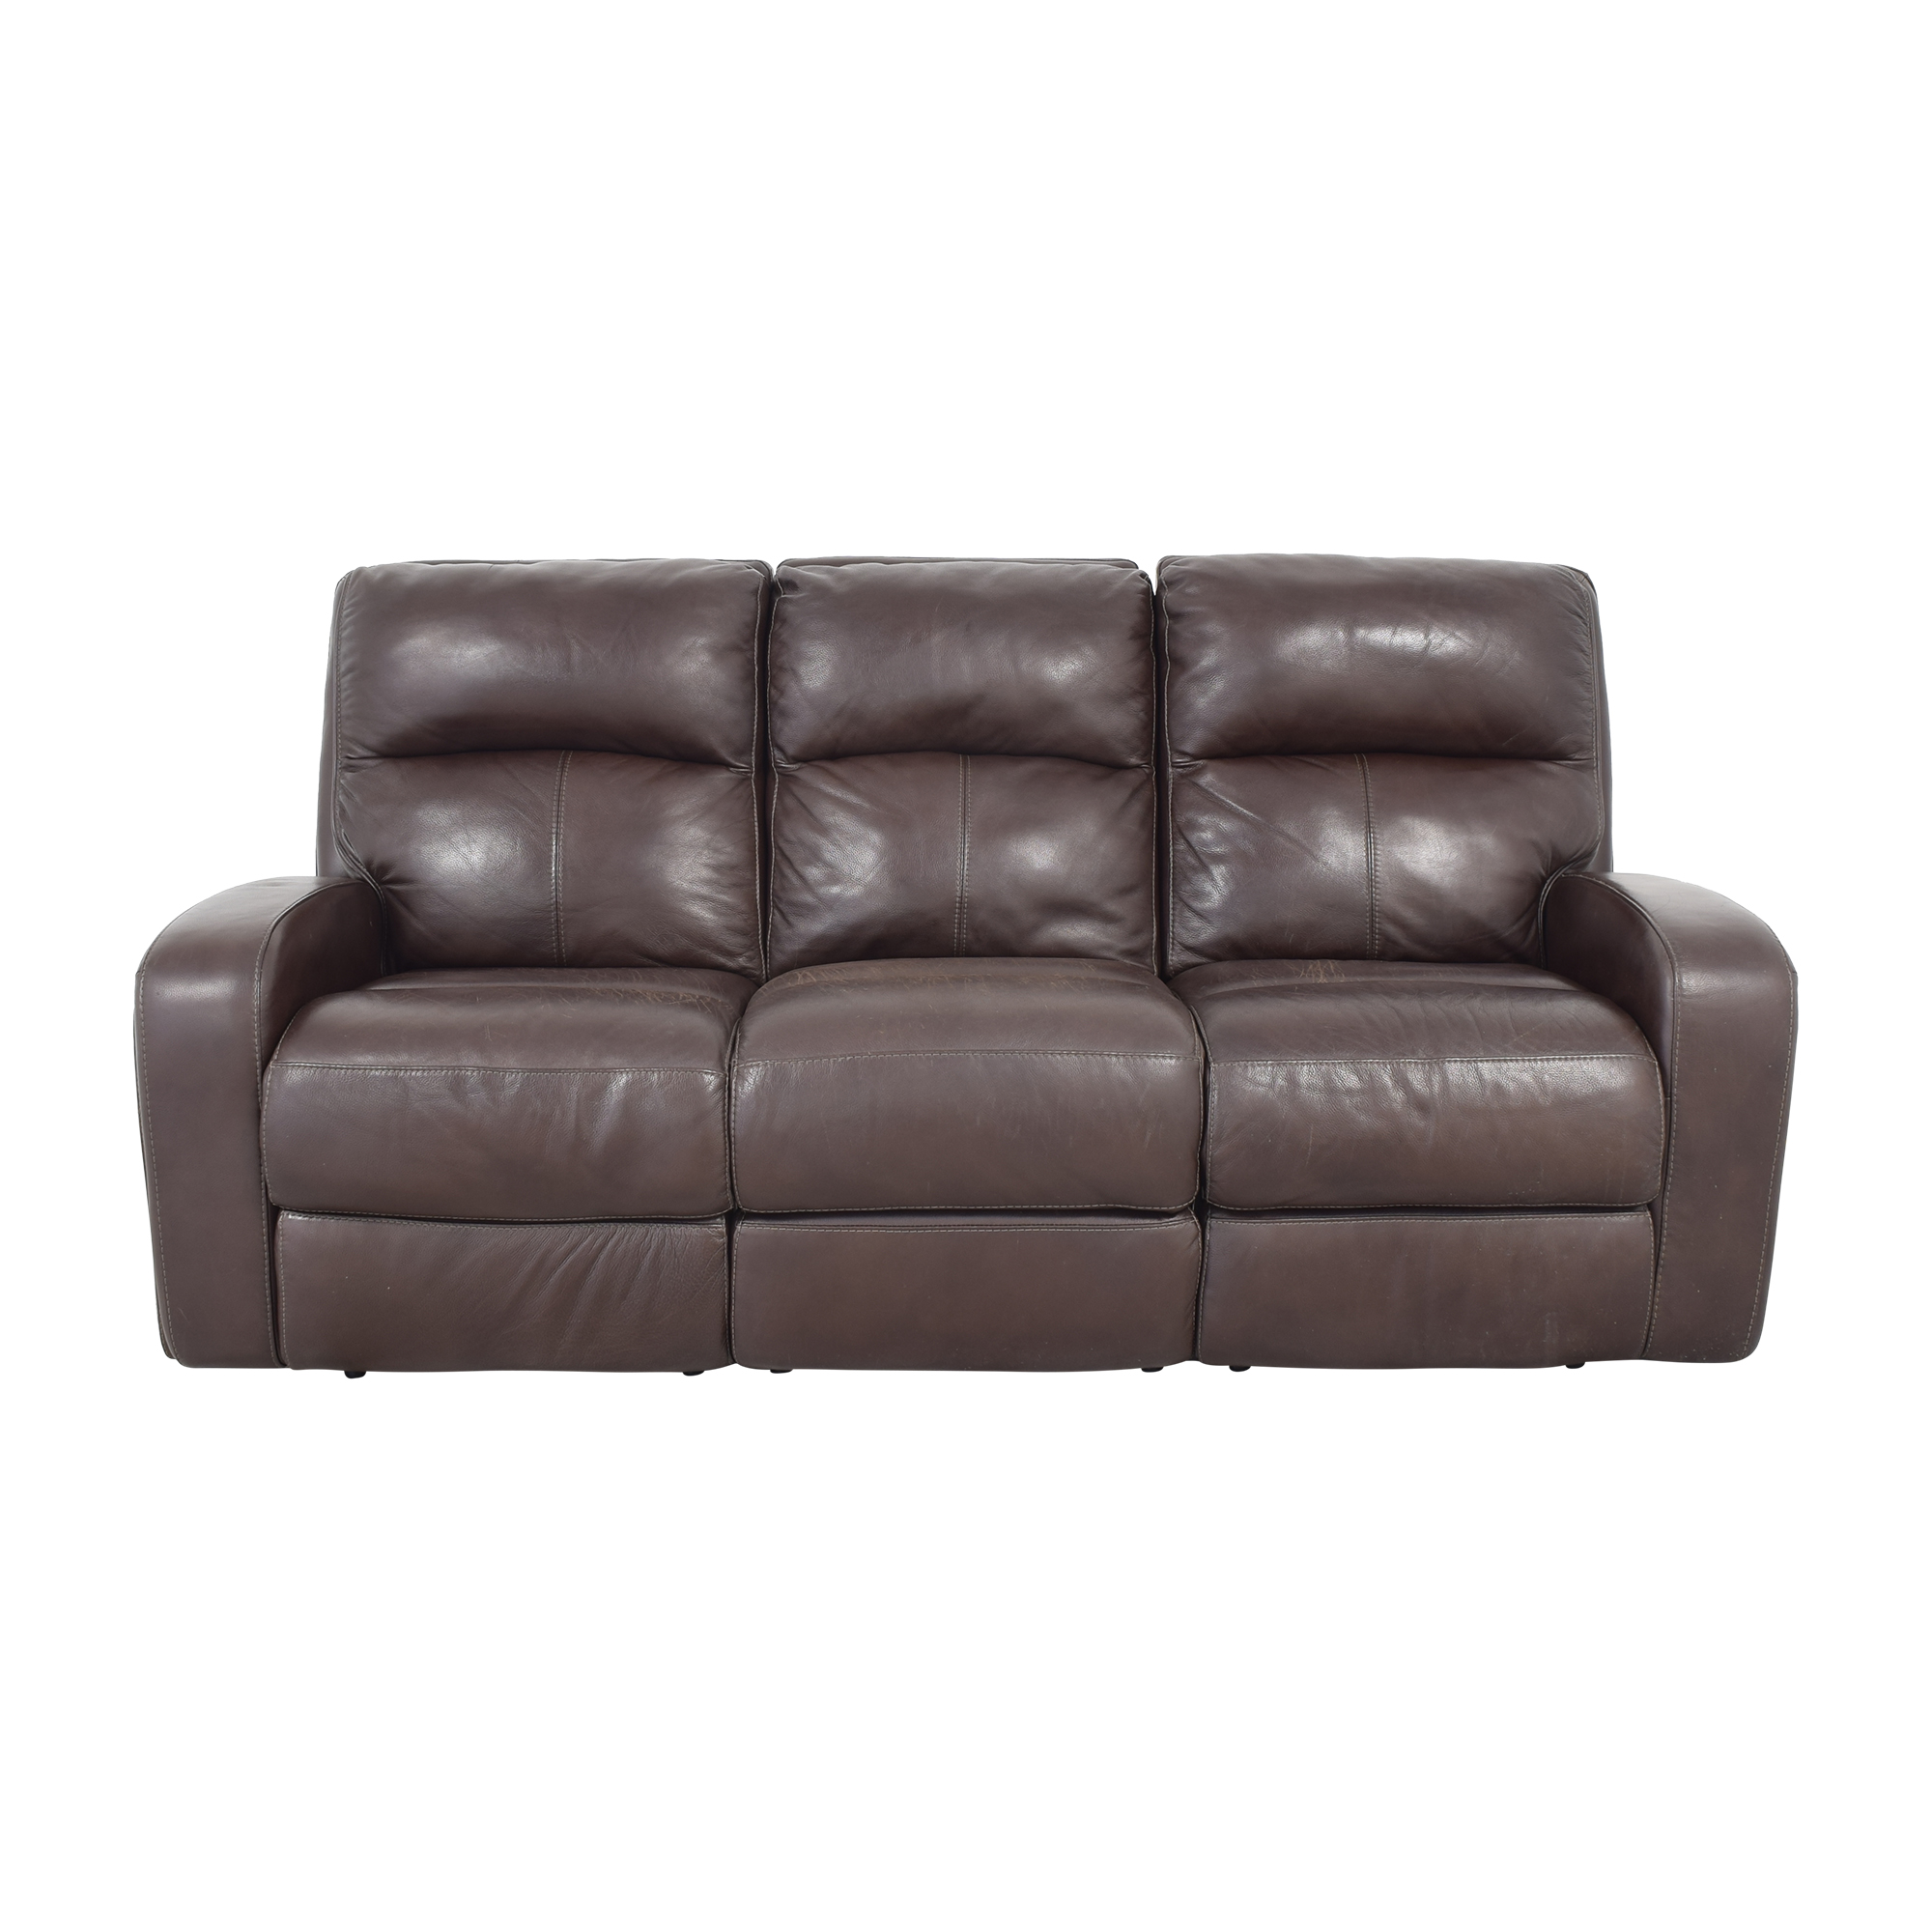 Macy's Goodwick Leather Dual Power Motion Sofa / Classic Sofas